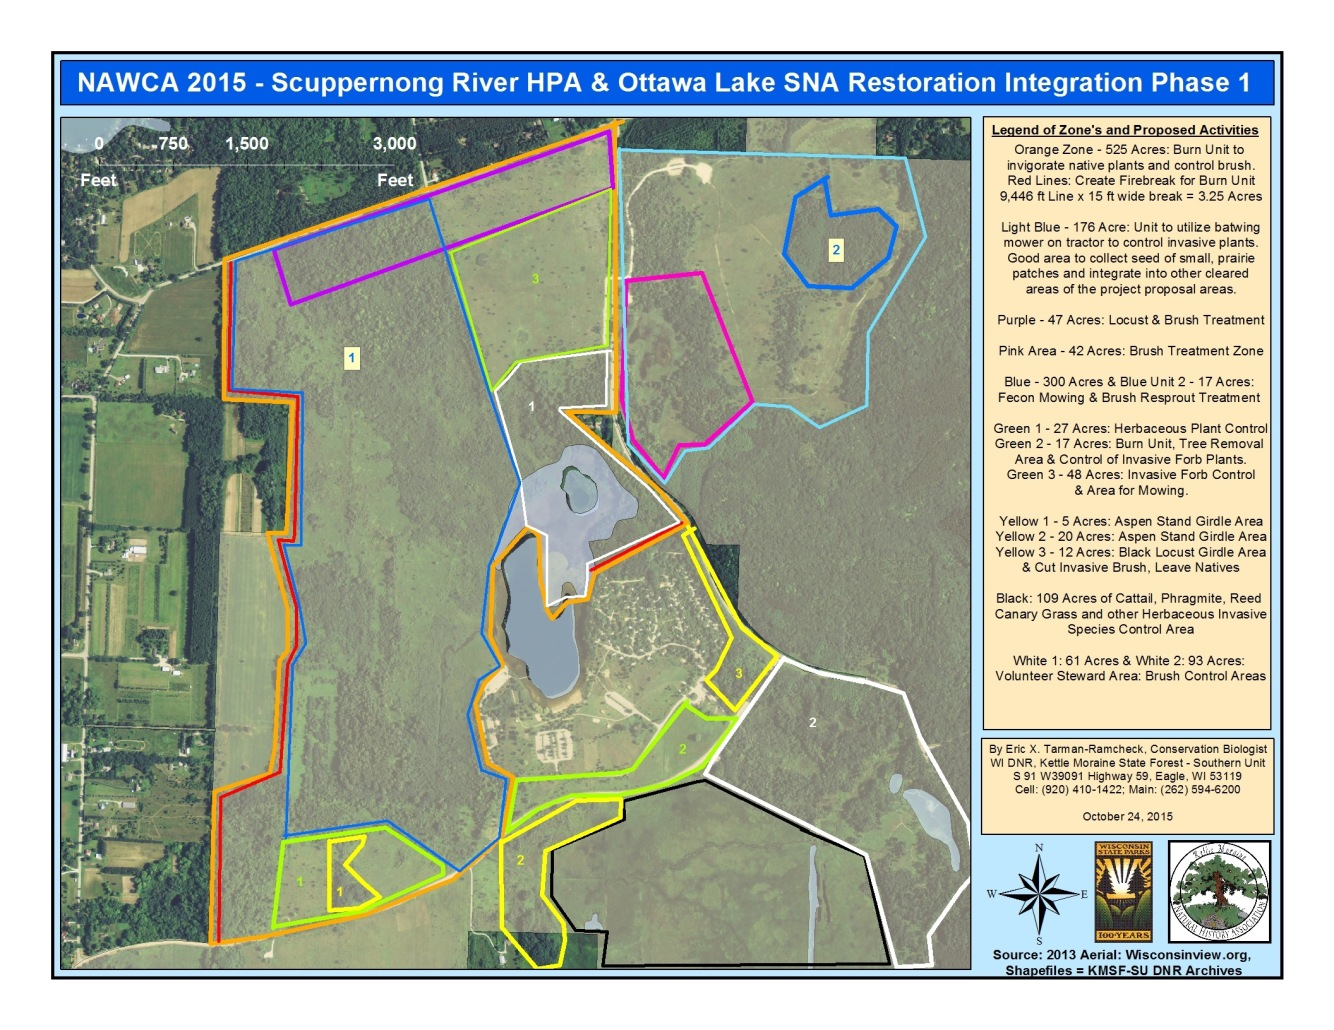 NAWCA 2015 - Scuppernong River HPA & Ottawa Lake SNA Restoration - Phase 1